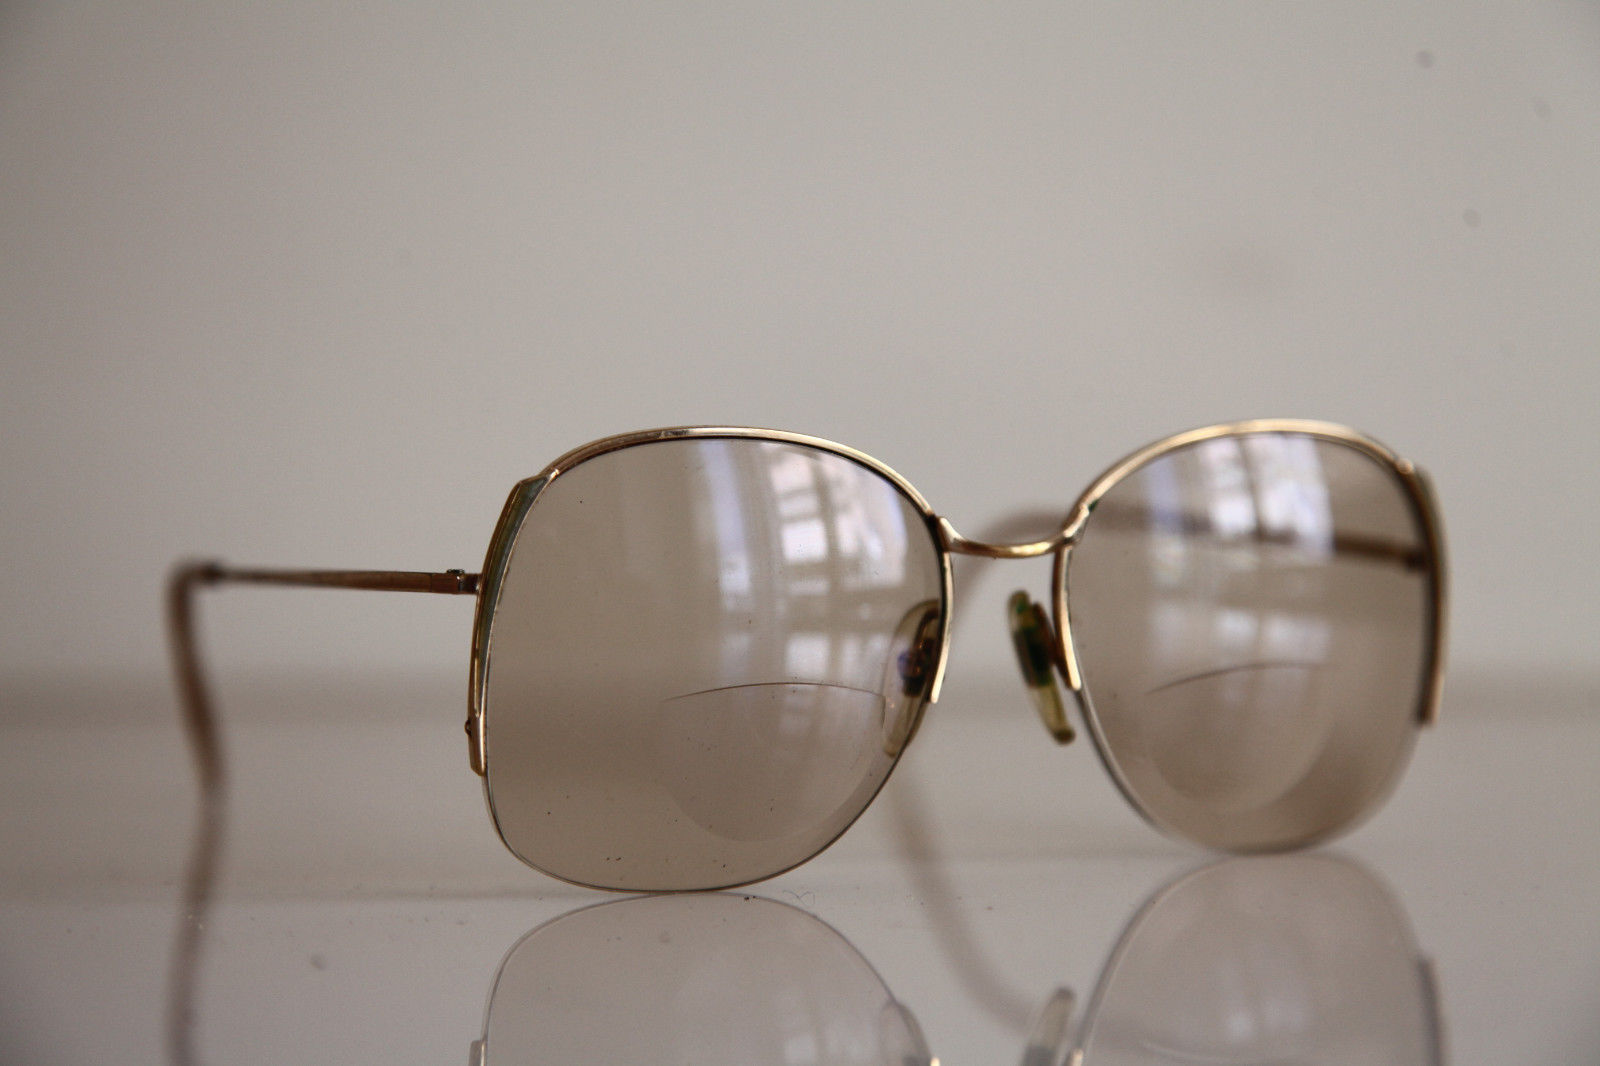 Eyewear, Gold Half Rimless Frame, RX-Able  Tinted Prescription lenses. image 2